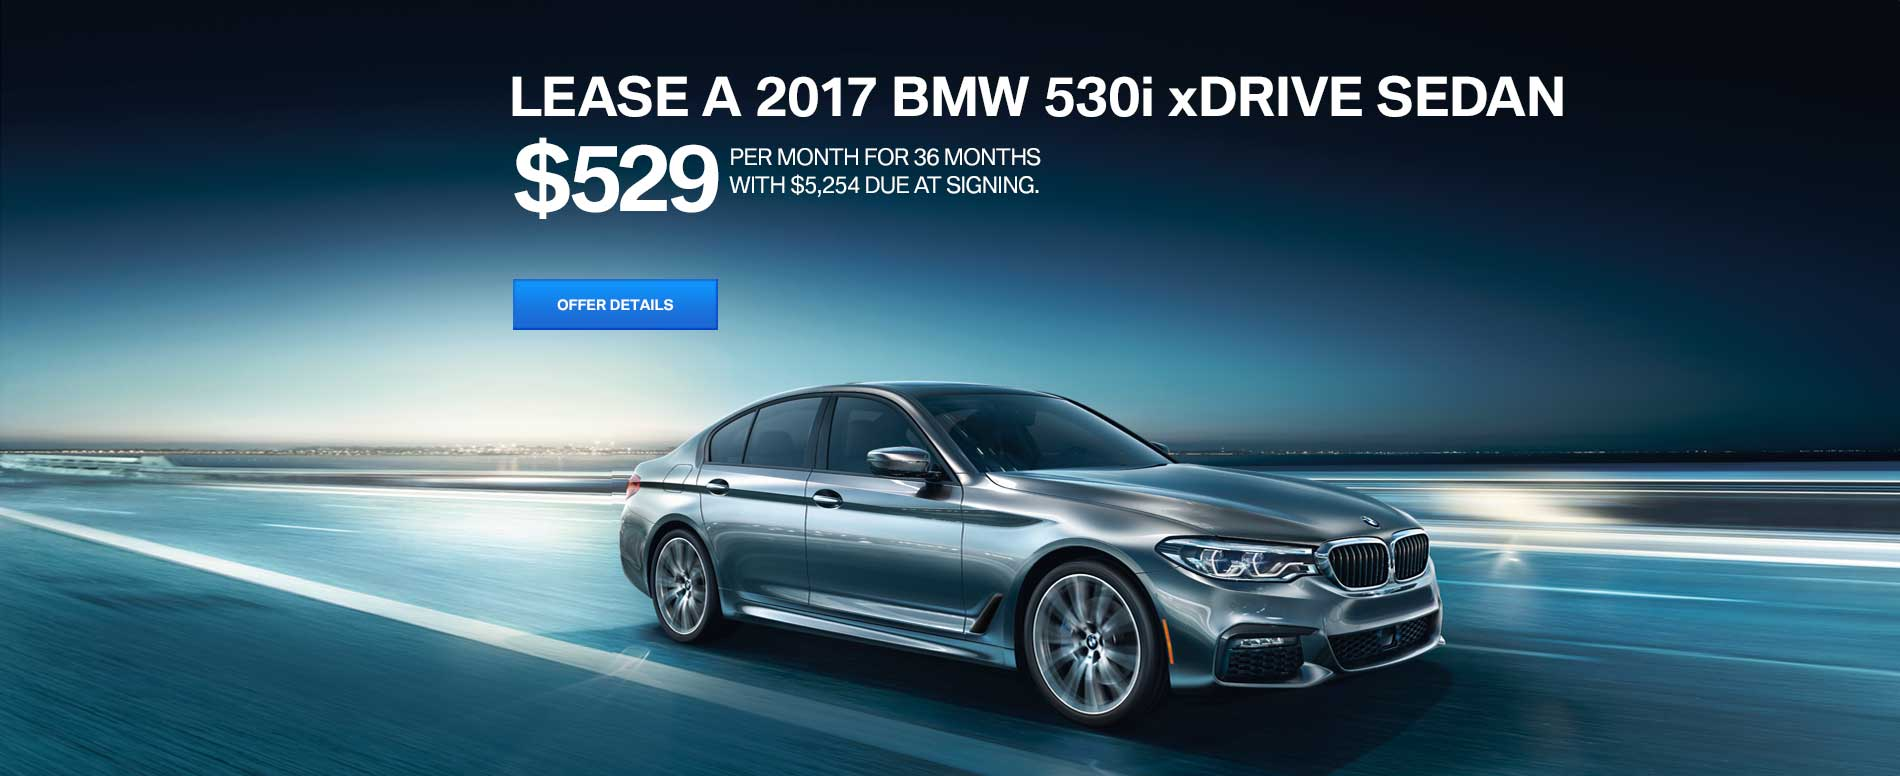 BMW Central Region Lease Offers